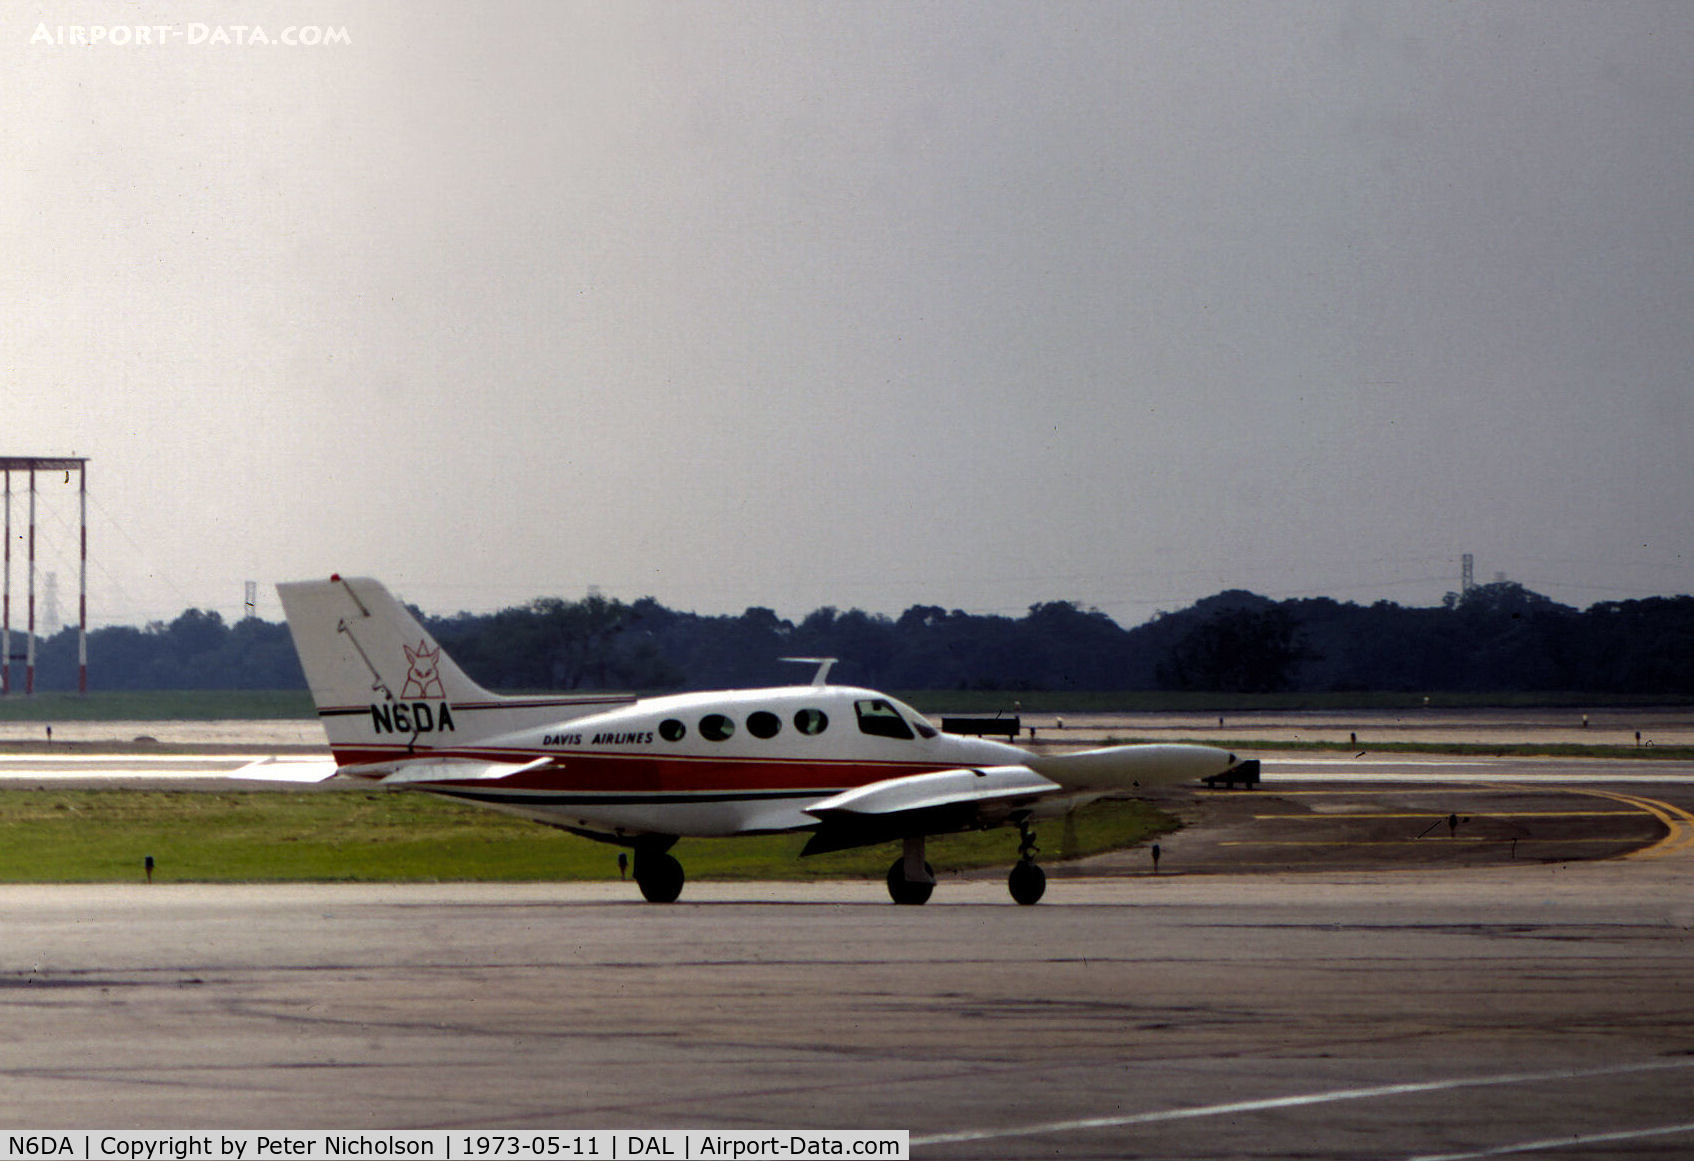 N6DA, 1967 Cessna 402 C/N 402-0139, Cessna 402 of Davis Airlines, a commuter airline which later was absorbed within Rio Airways, taxying at Love Field, Dallas in May 1973.